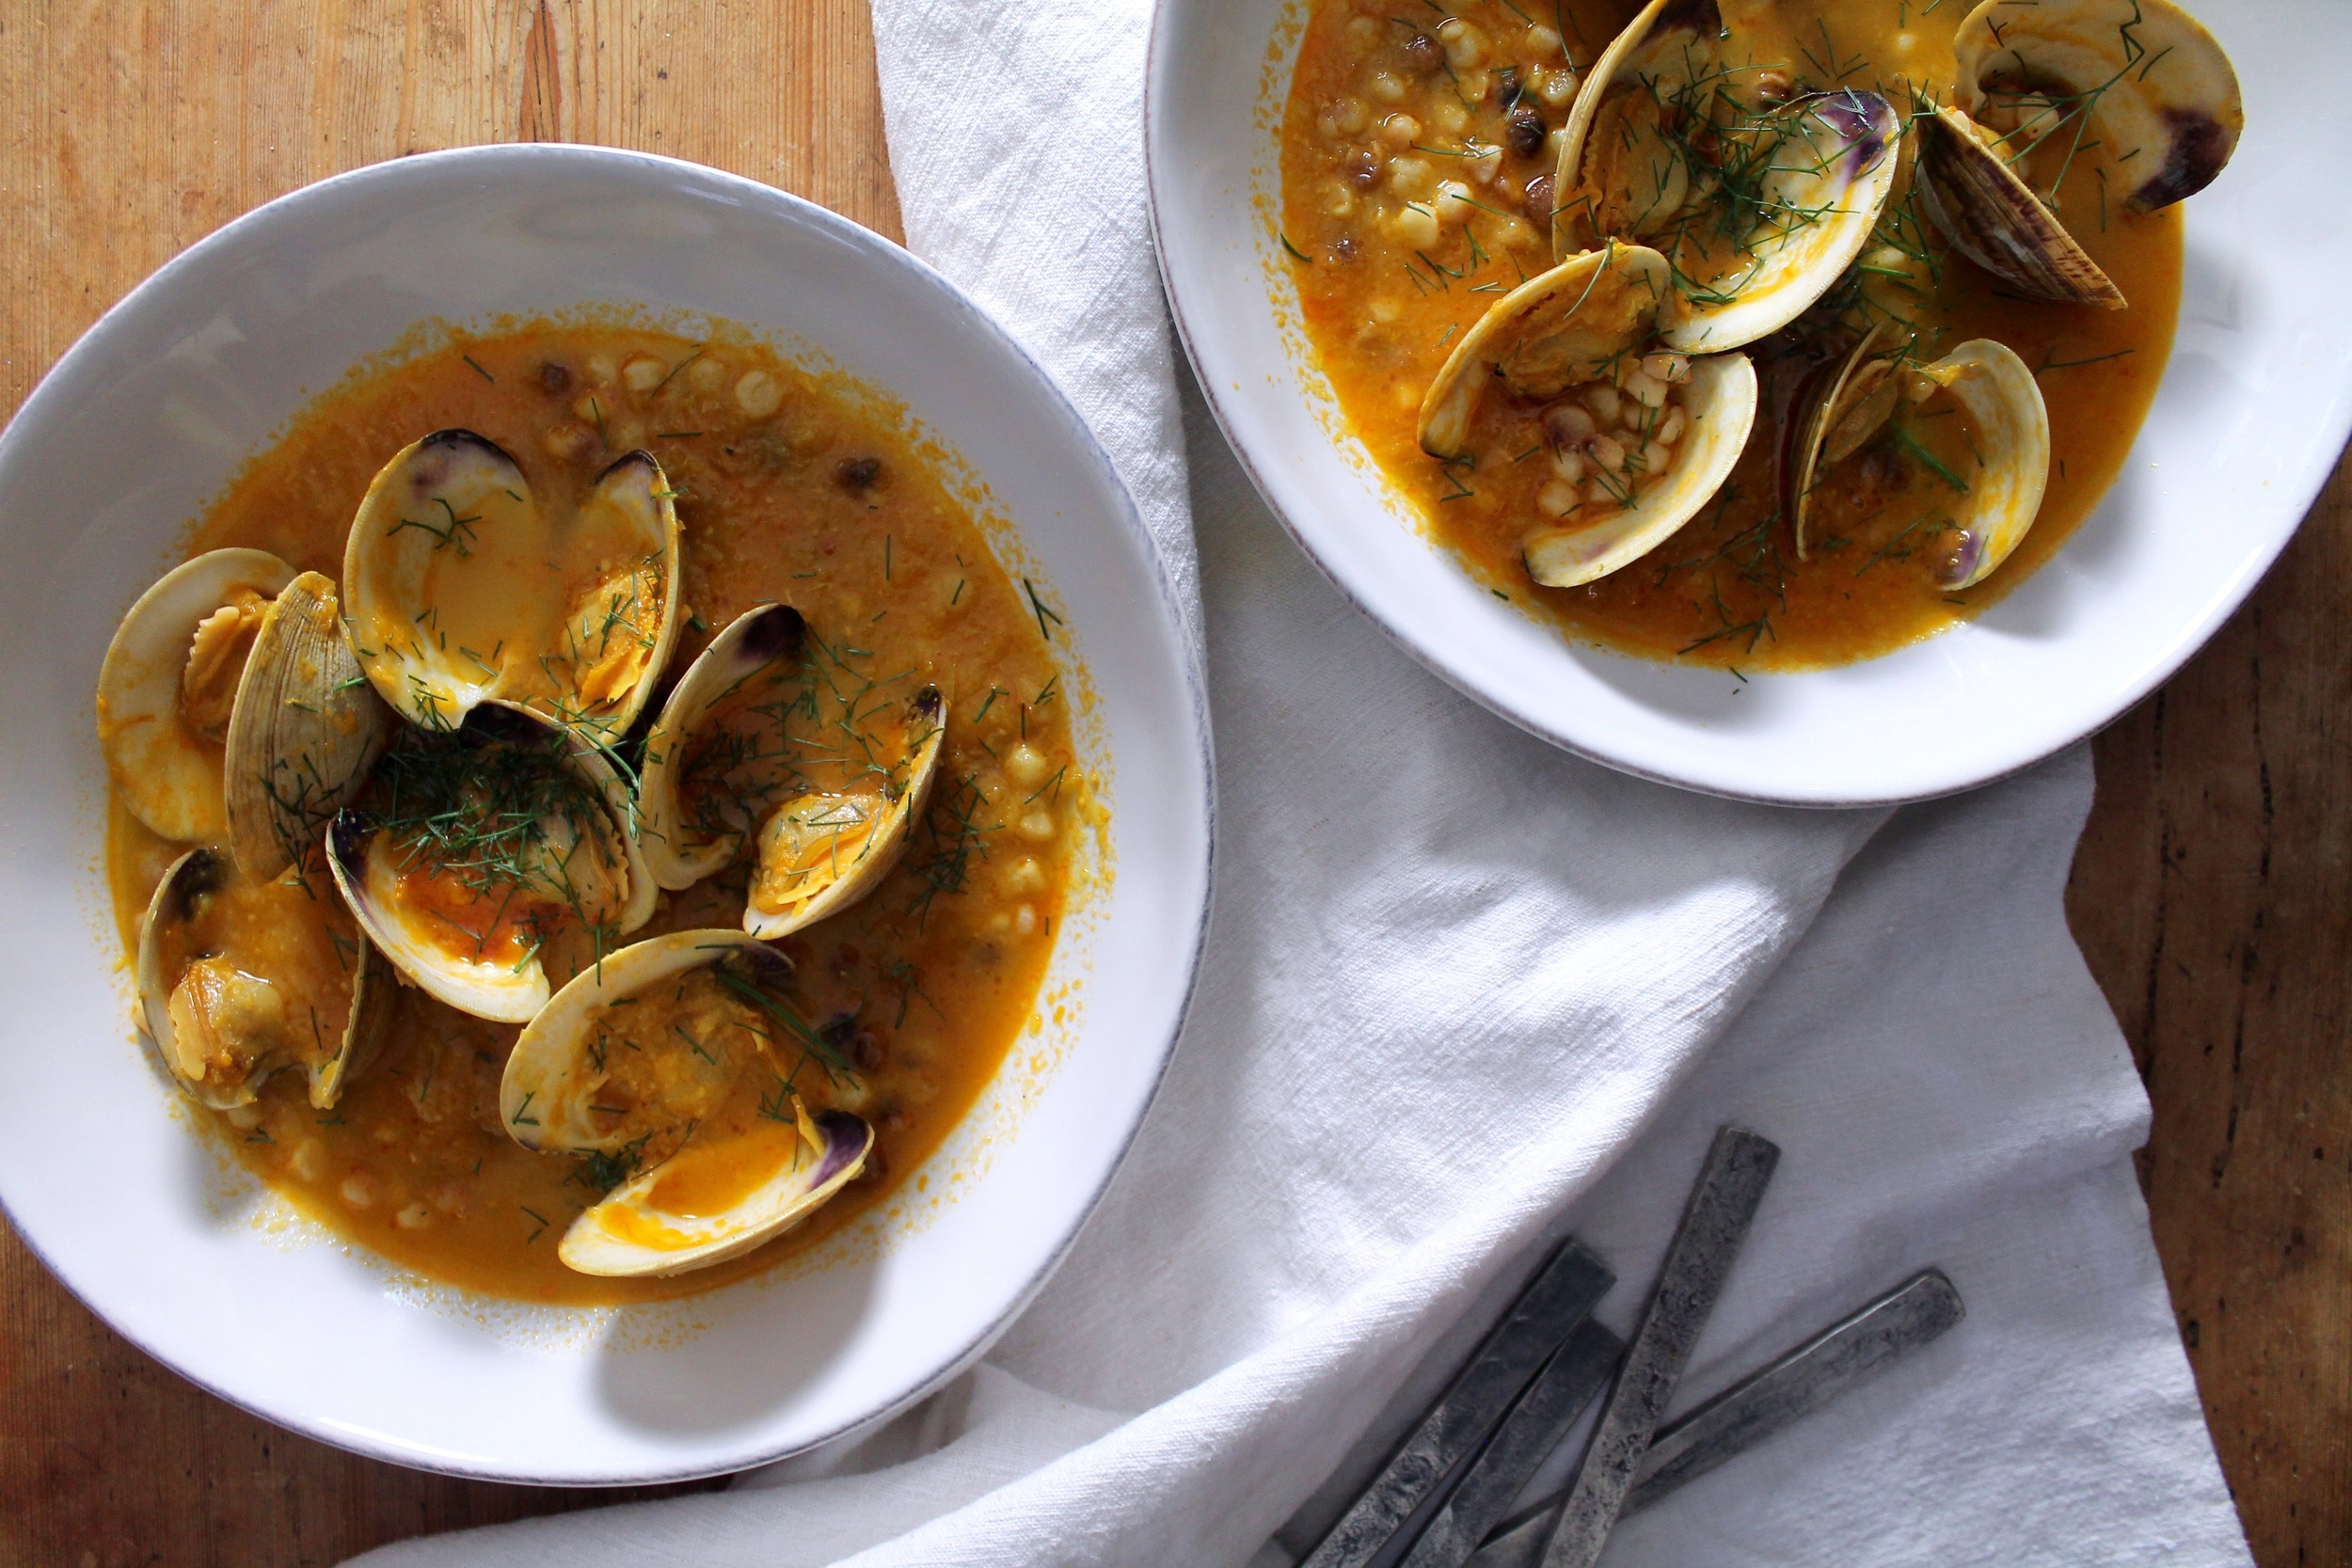 Cherrystone Clams with Saffron + Fregola | www.hungryinlove.com